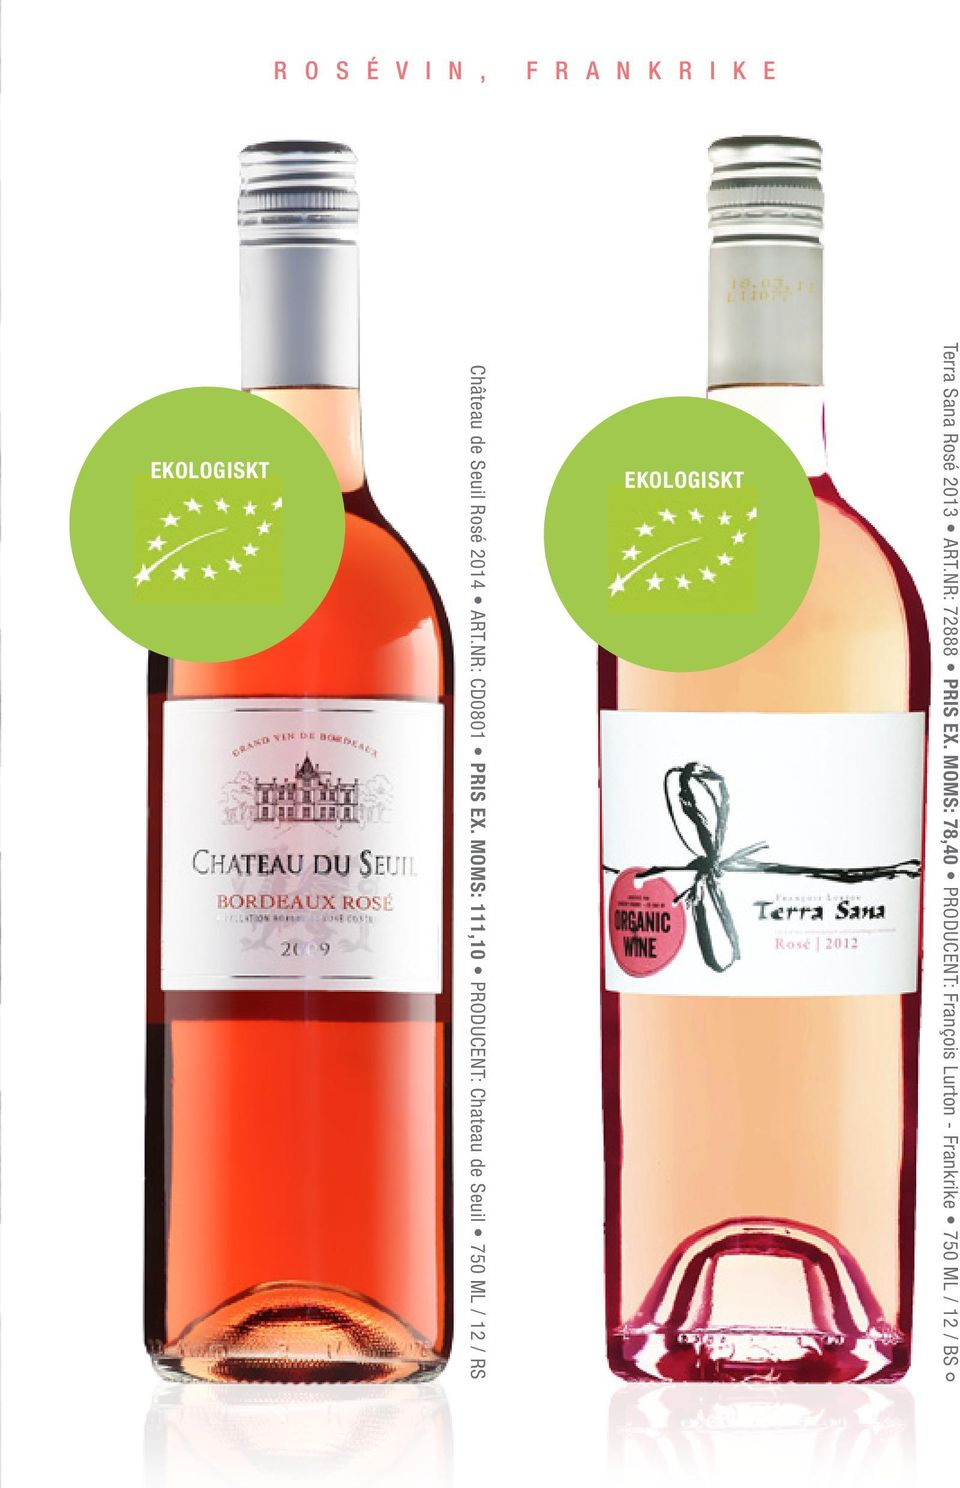 MOMS: 111,10 PRODUCENT: Chateau de Seuil 750 ML / 12 / RS EKOLOGISKT